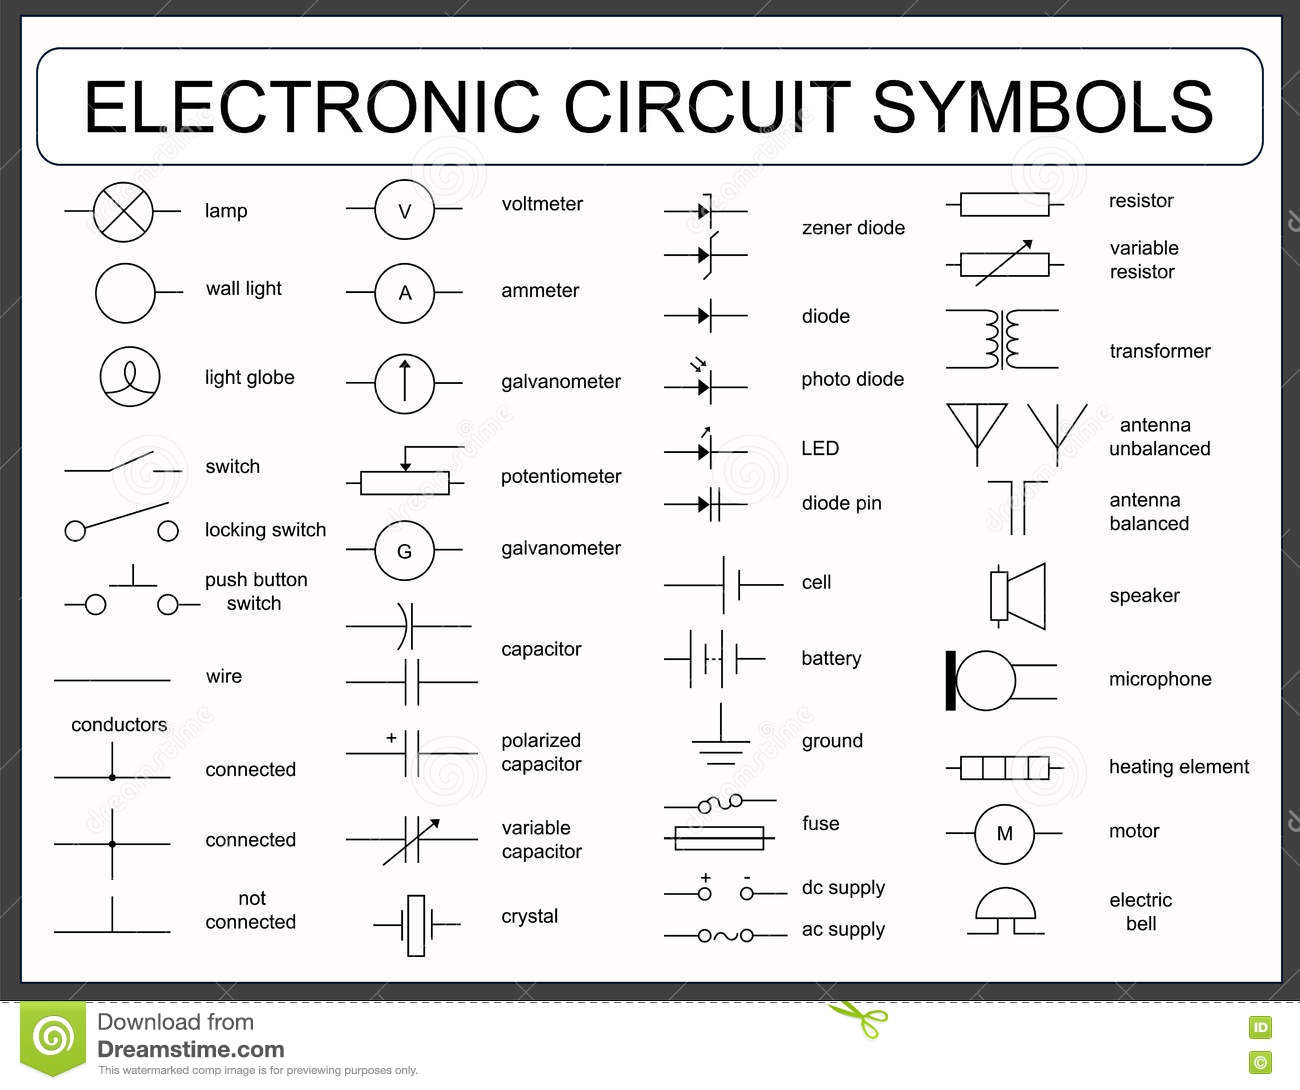 Office Belectrical Bplan additionally Symbols For Electrical Circuits Autocad Dwg Cads le  Symbols For Electrical Circuits Autocad Dwg likewise Building Plans Electric And Tele  Plans Design Elements Outlets together with Blueprints Plumbing Bathroom furthermore Interior Design Registers Drills Diffusers Design Element. on outlet symbols electrical drawings